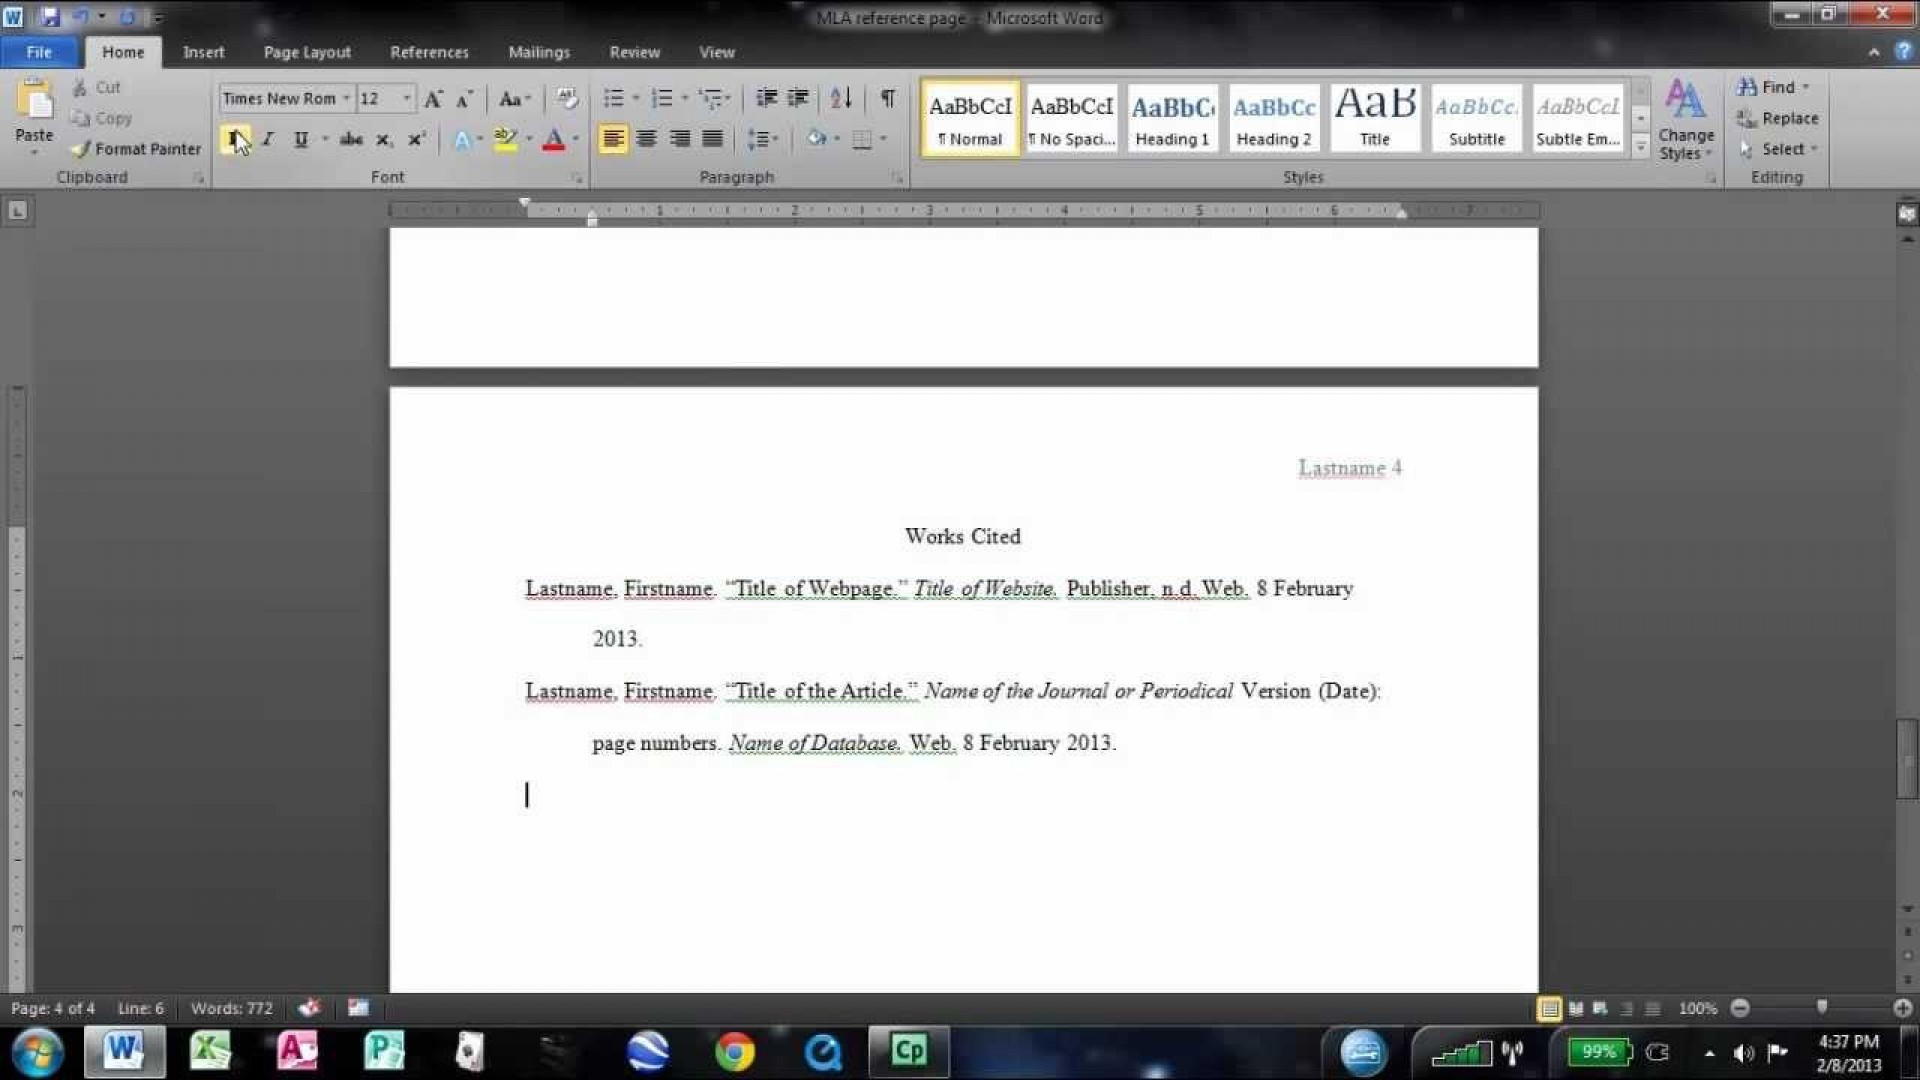 008 Research Paper Maxresdefault How To Do Mla Works Cited Unusual For A Page 1920